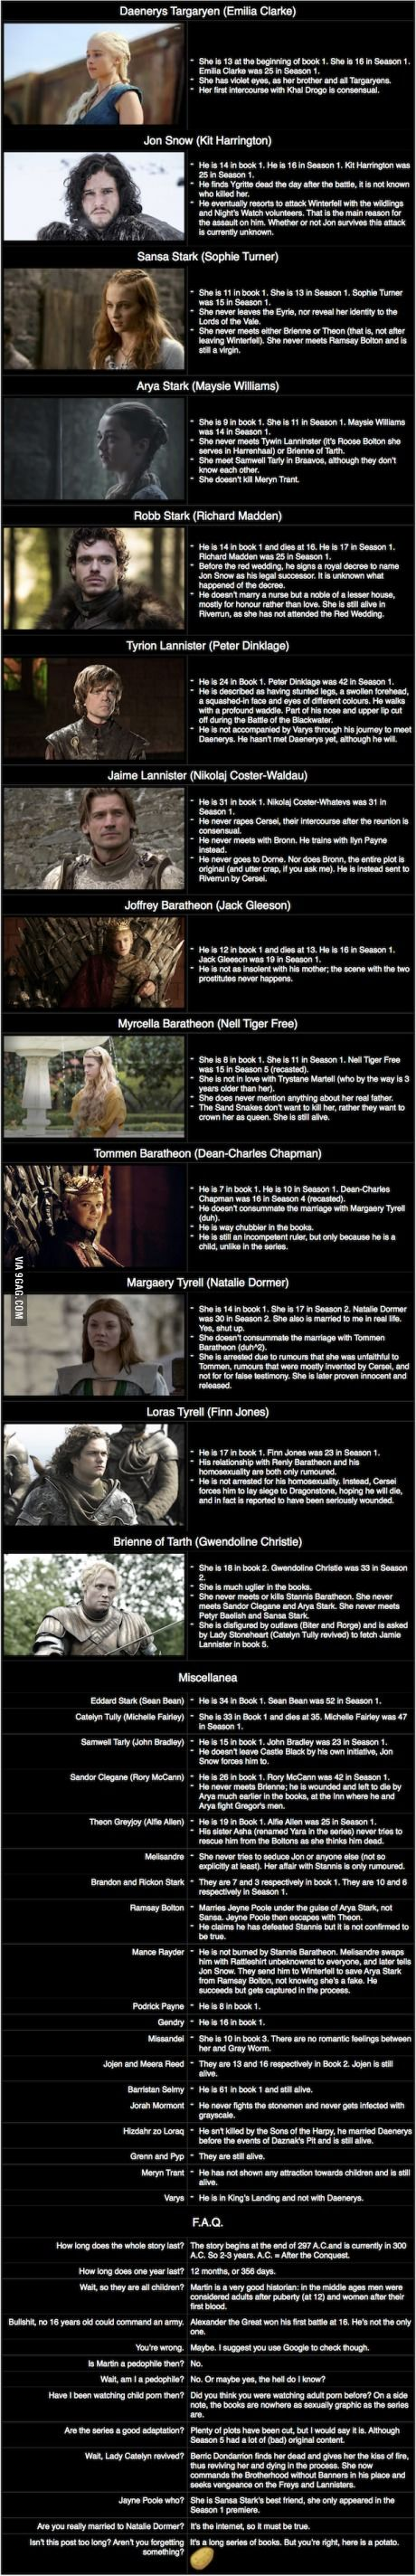 Main differences between Game of Thrones and the book series. Major spoilers ahead!